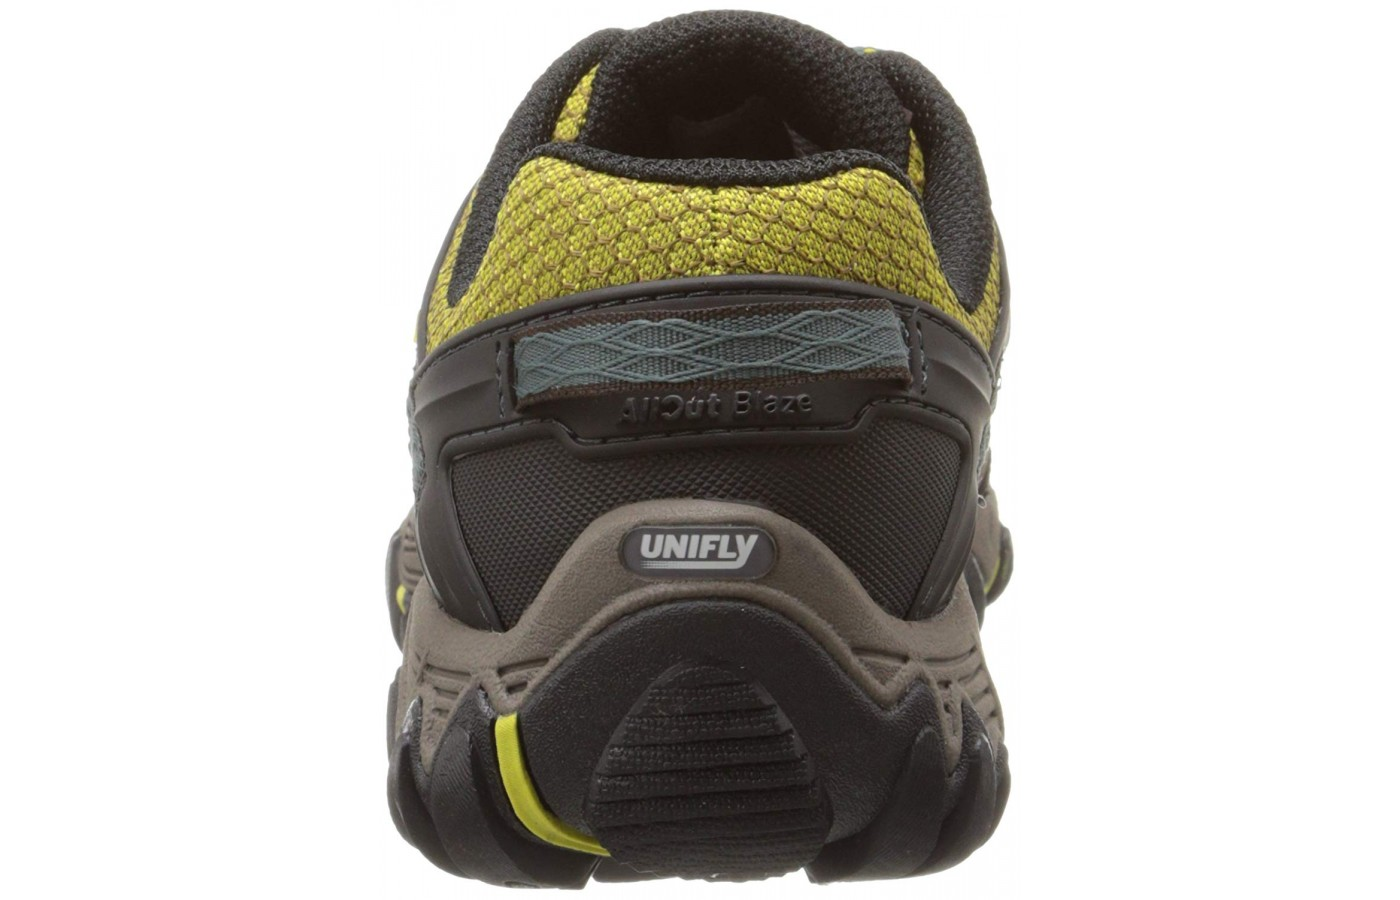 This hiking shoe has plenty of cushioning.